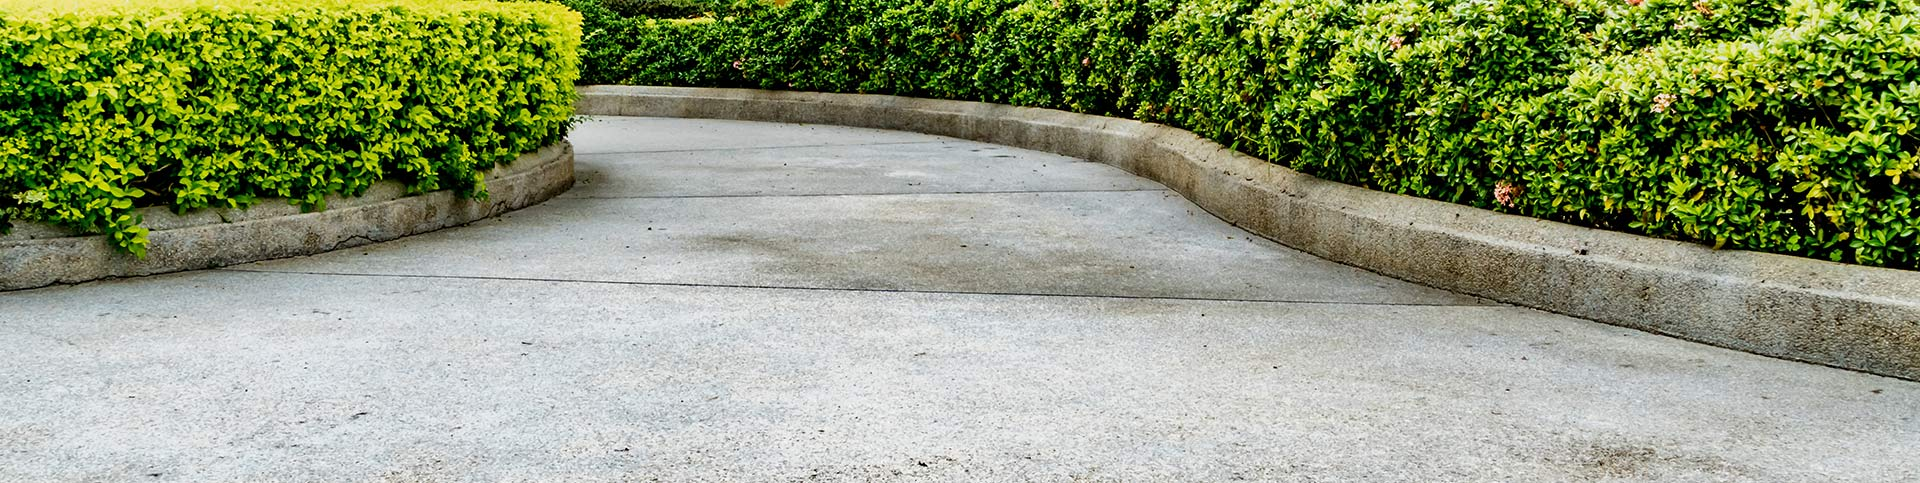 Hunter Valley Concrete - Quality Concrete on time and on budget